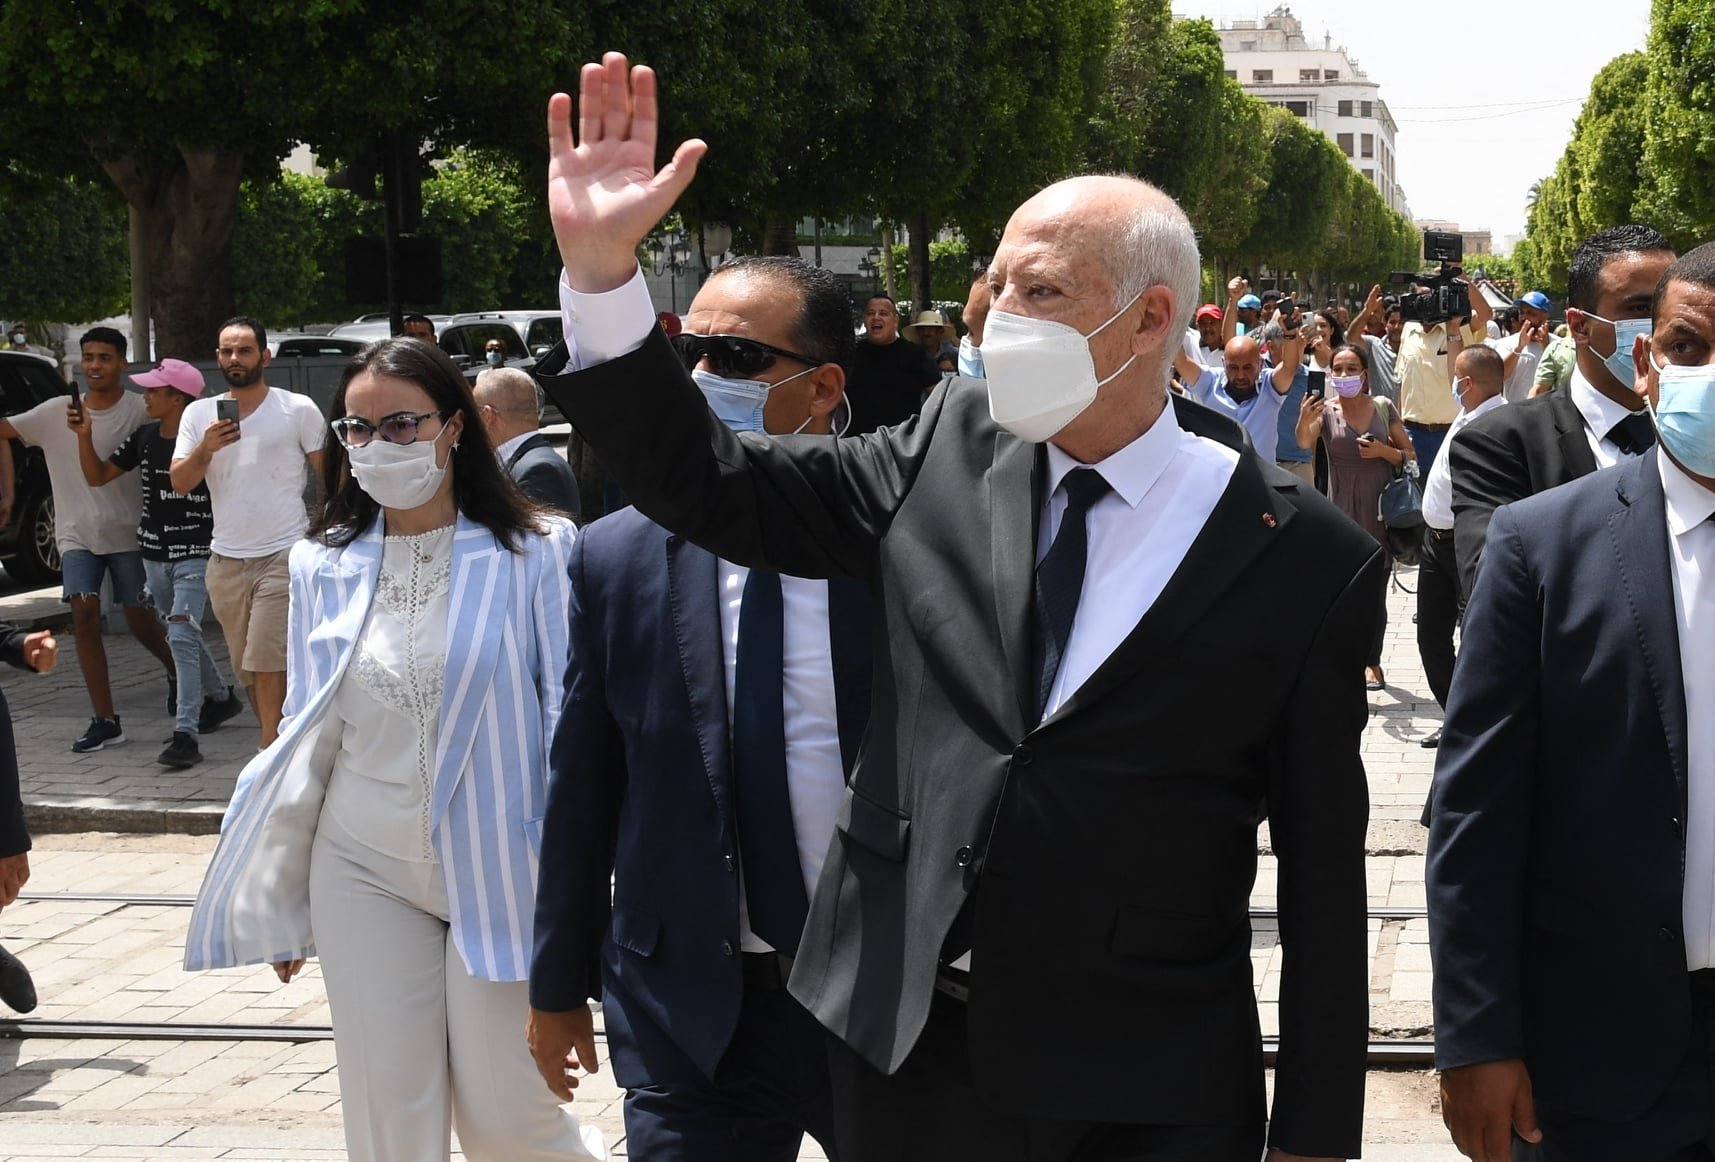 President Kais Saied (C) gesturing as he walks protected by security while touring Habib Bourguiba avenue in the center of Tunis, Tunisia, Aug. 1, 2021. (AFP Photo)